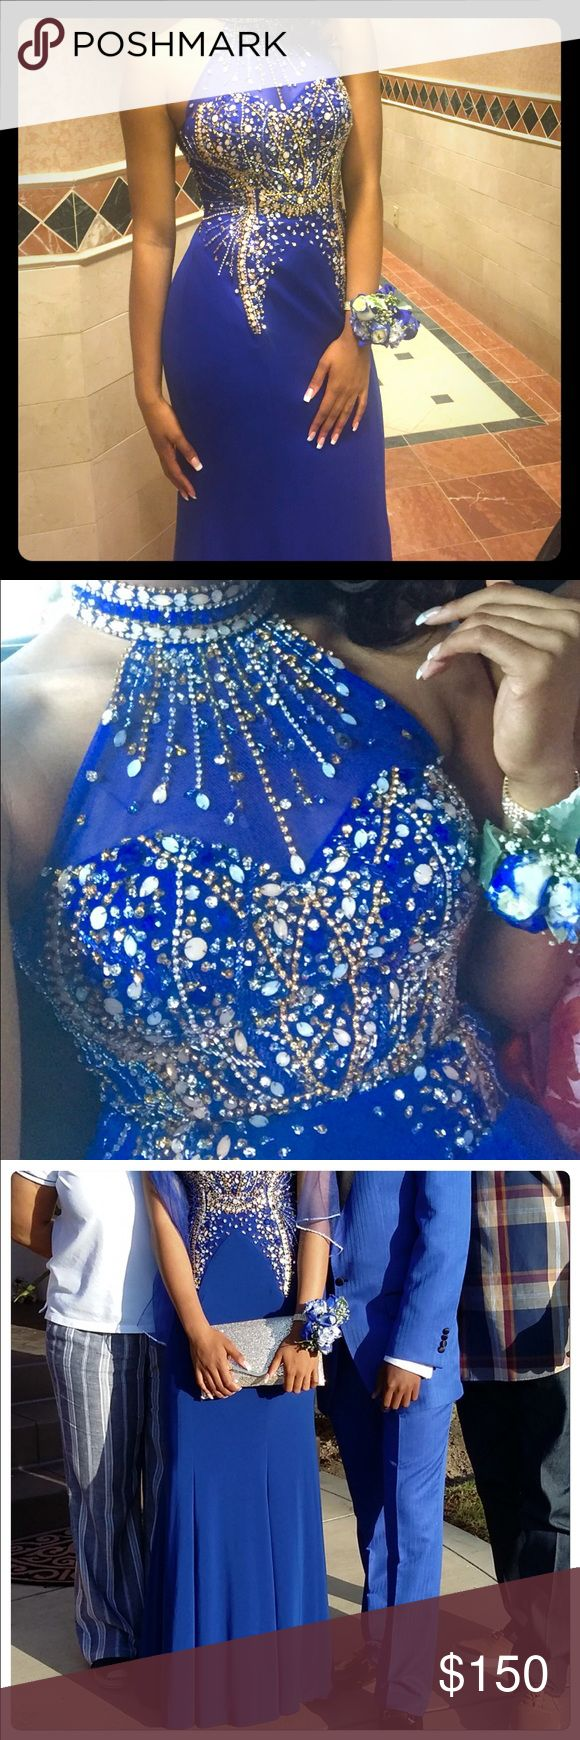 Beautiful Prom Dress Hand made beautiful prom dress, size 8. The 👗 was only worn one time. It is a royal blue color, fully-lined, custom made prom dress. Beads and rhinestones were sewn on by hand and none are missing. This by far was the most beautiful dress at prom. Dresses Prom